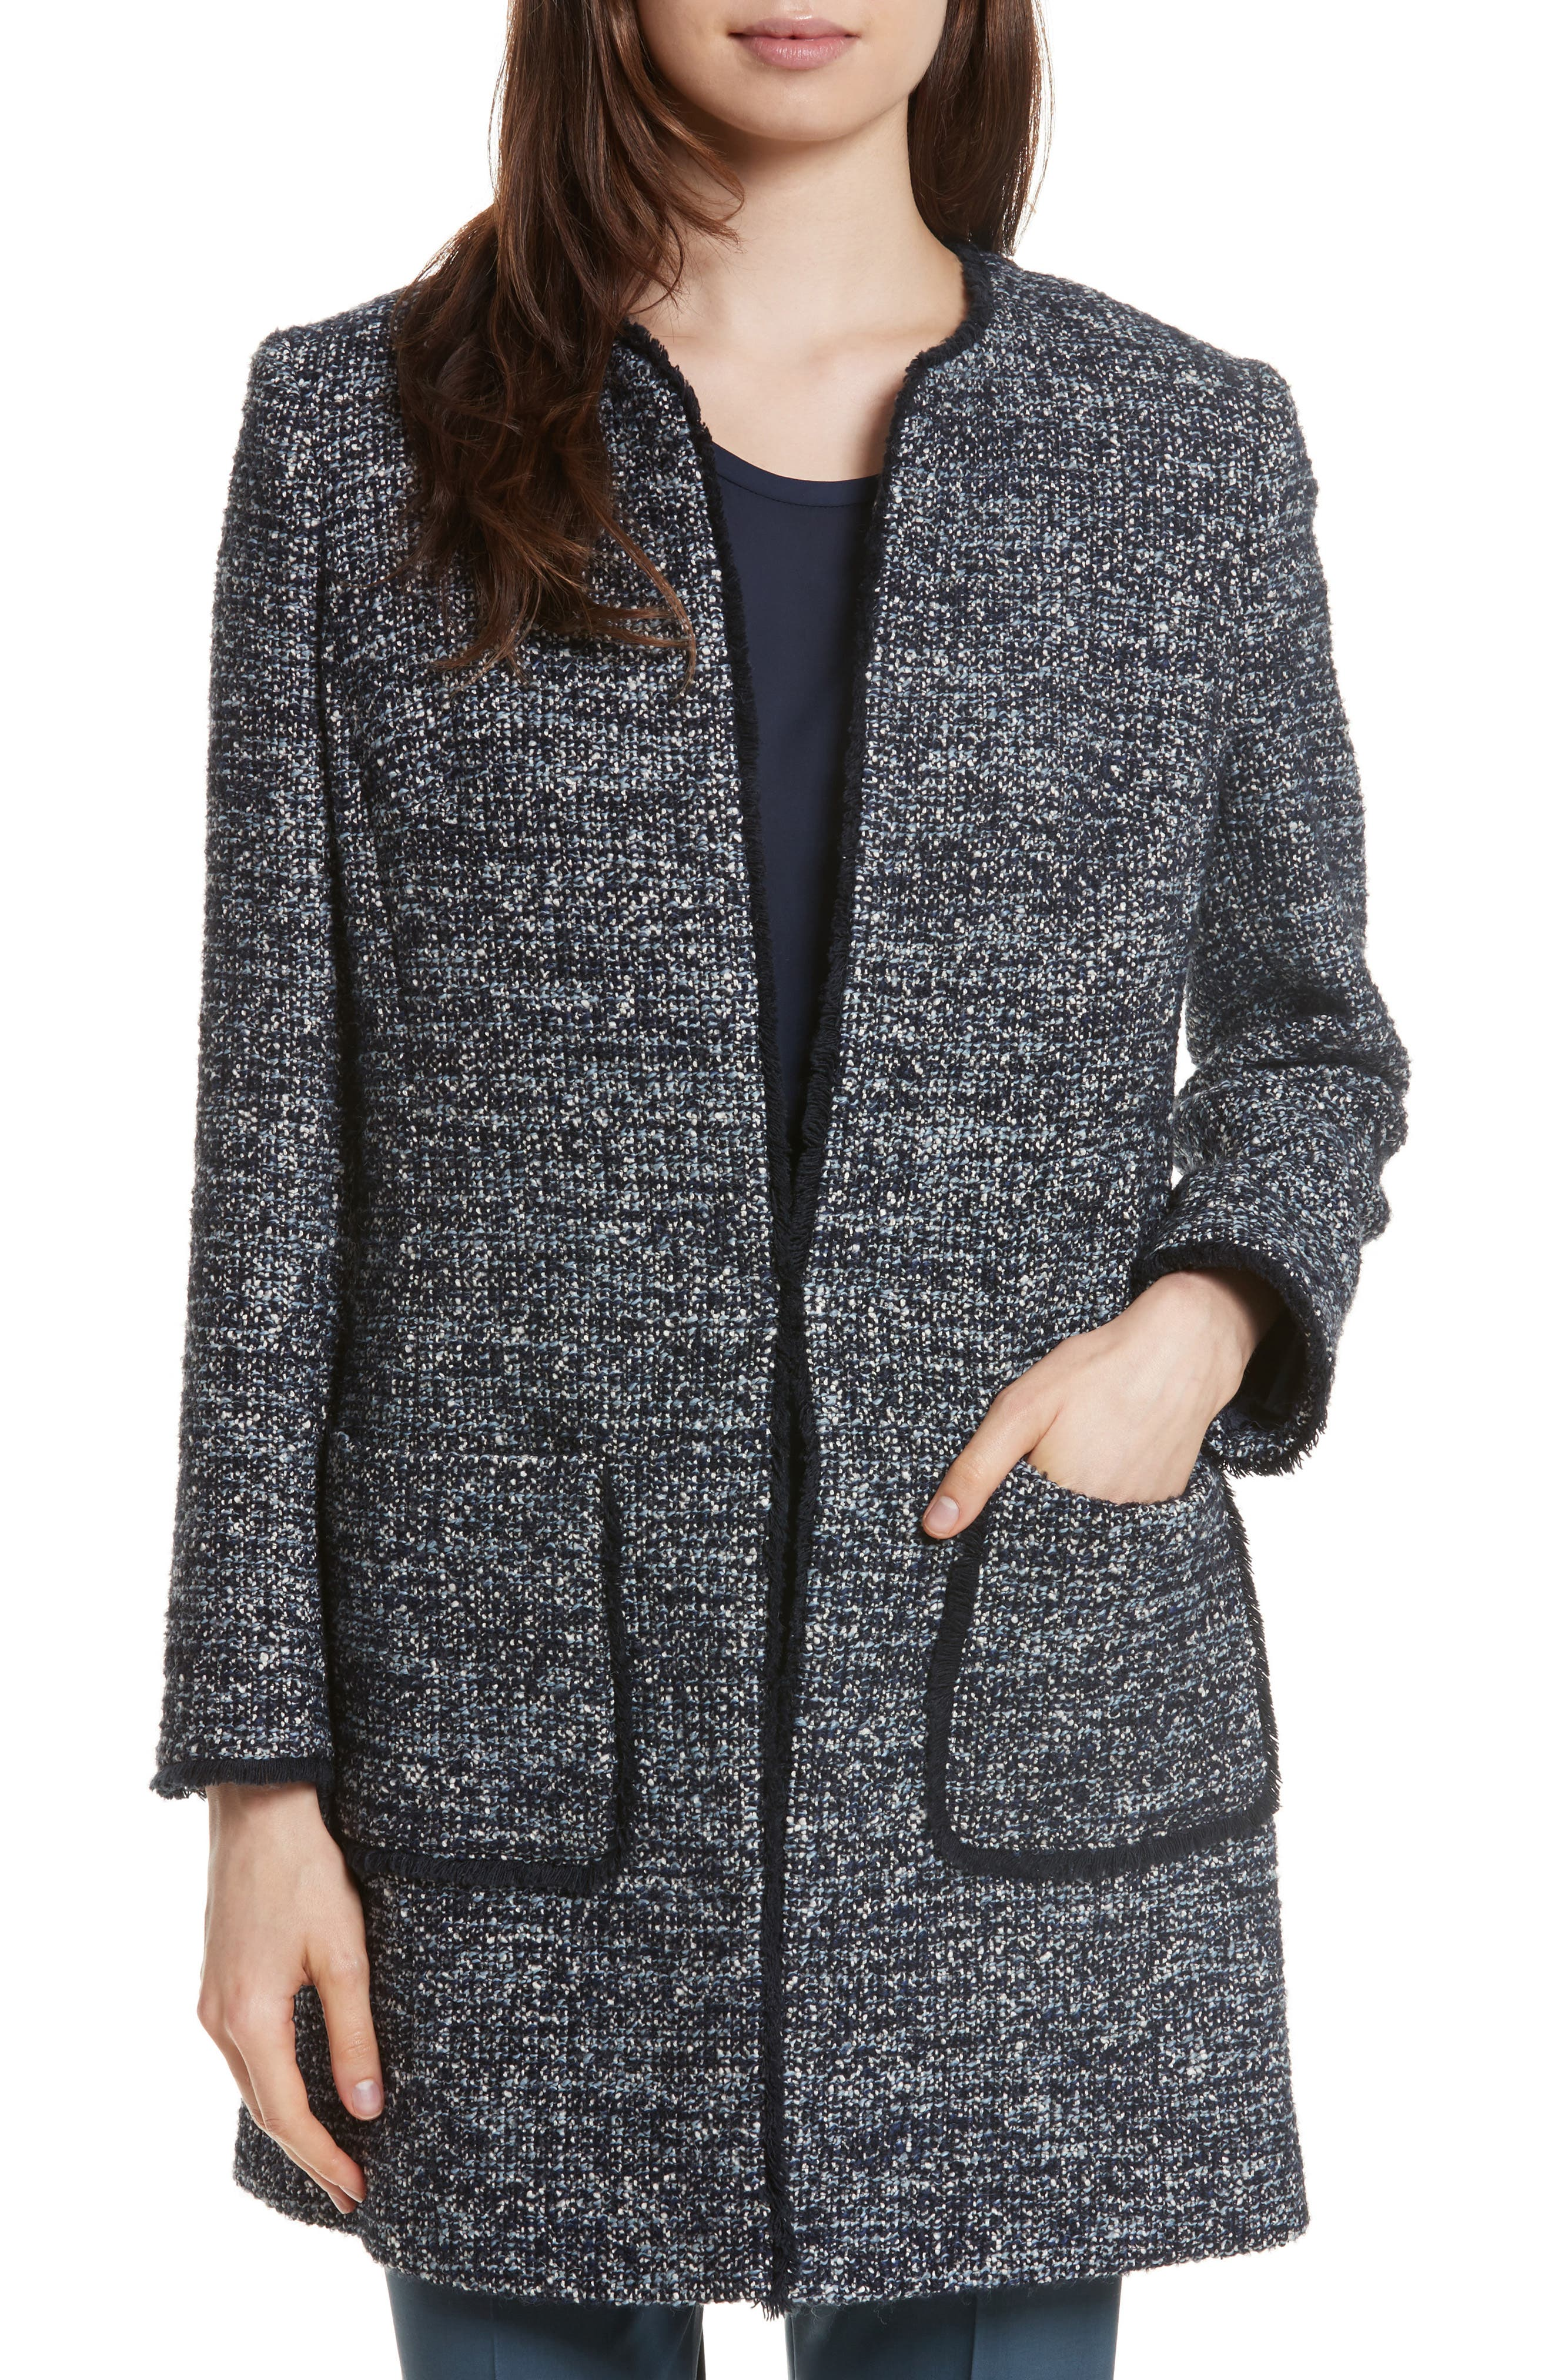 Alice Tweed Jacket,                         Main,                         color, Navy/ Pale Blue